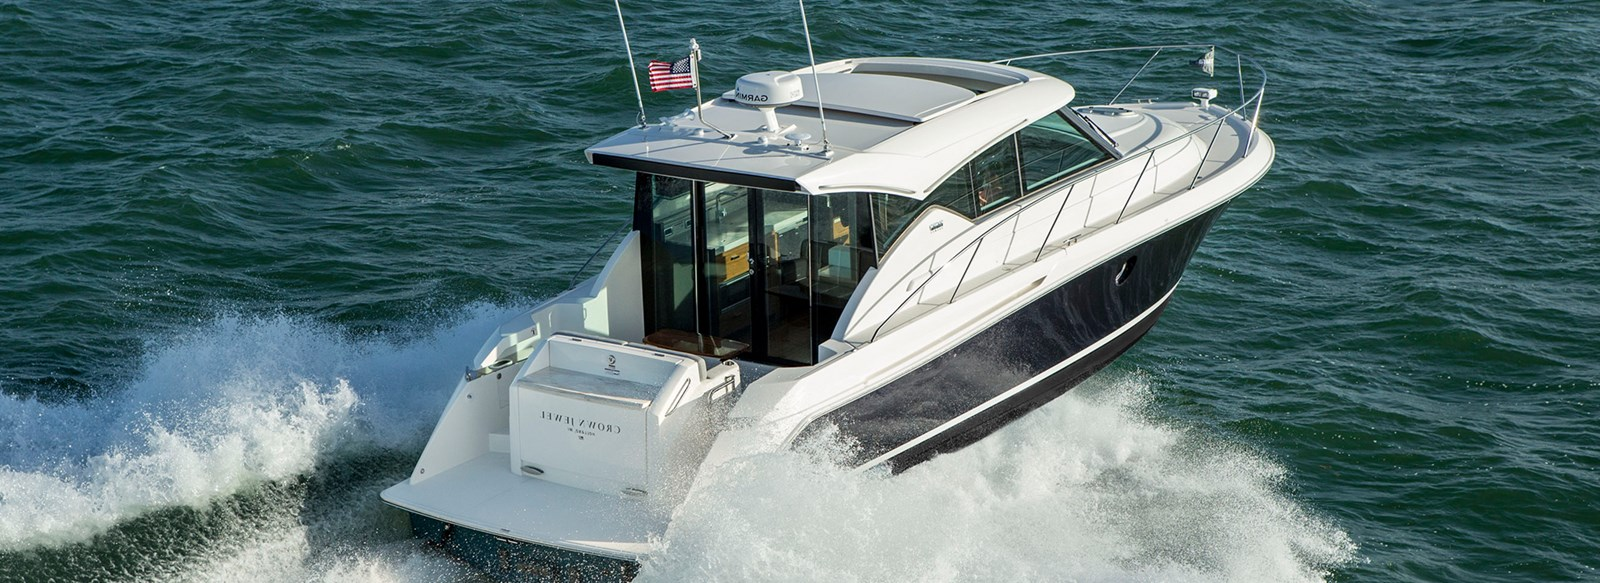 New Tiara 39 Coupe Yachts For Sale